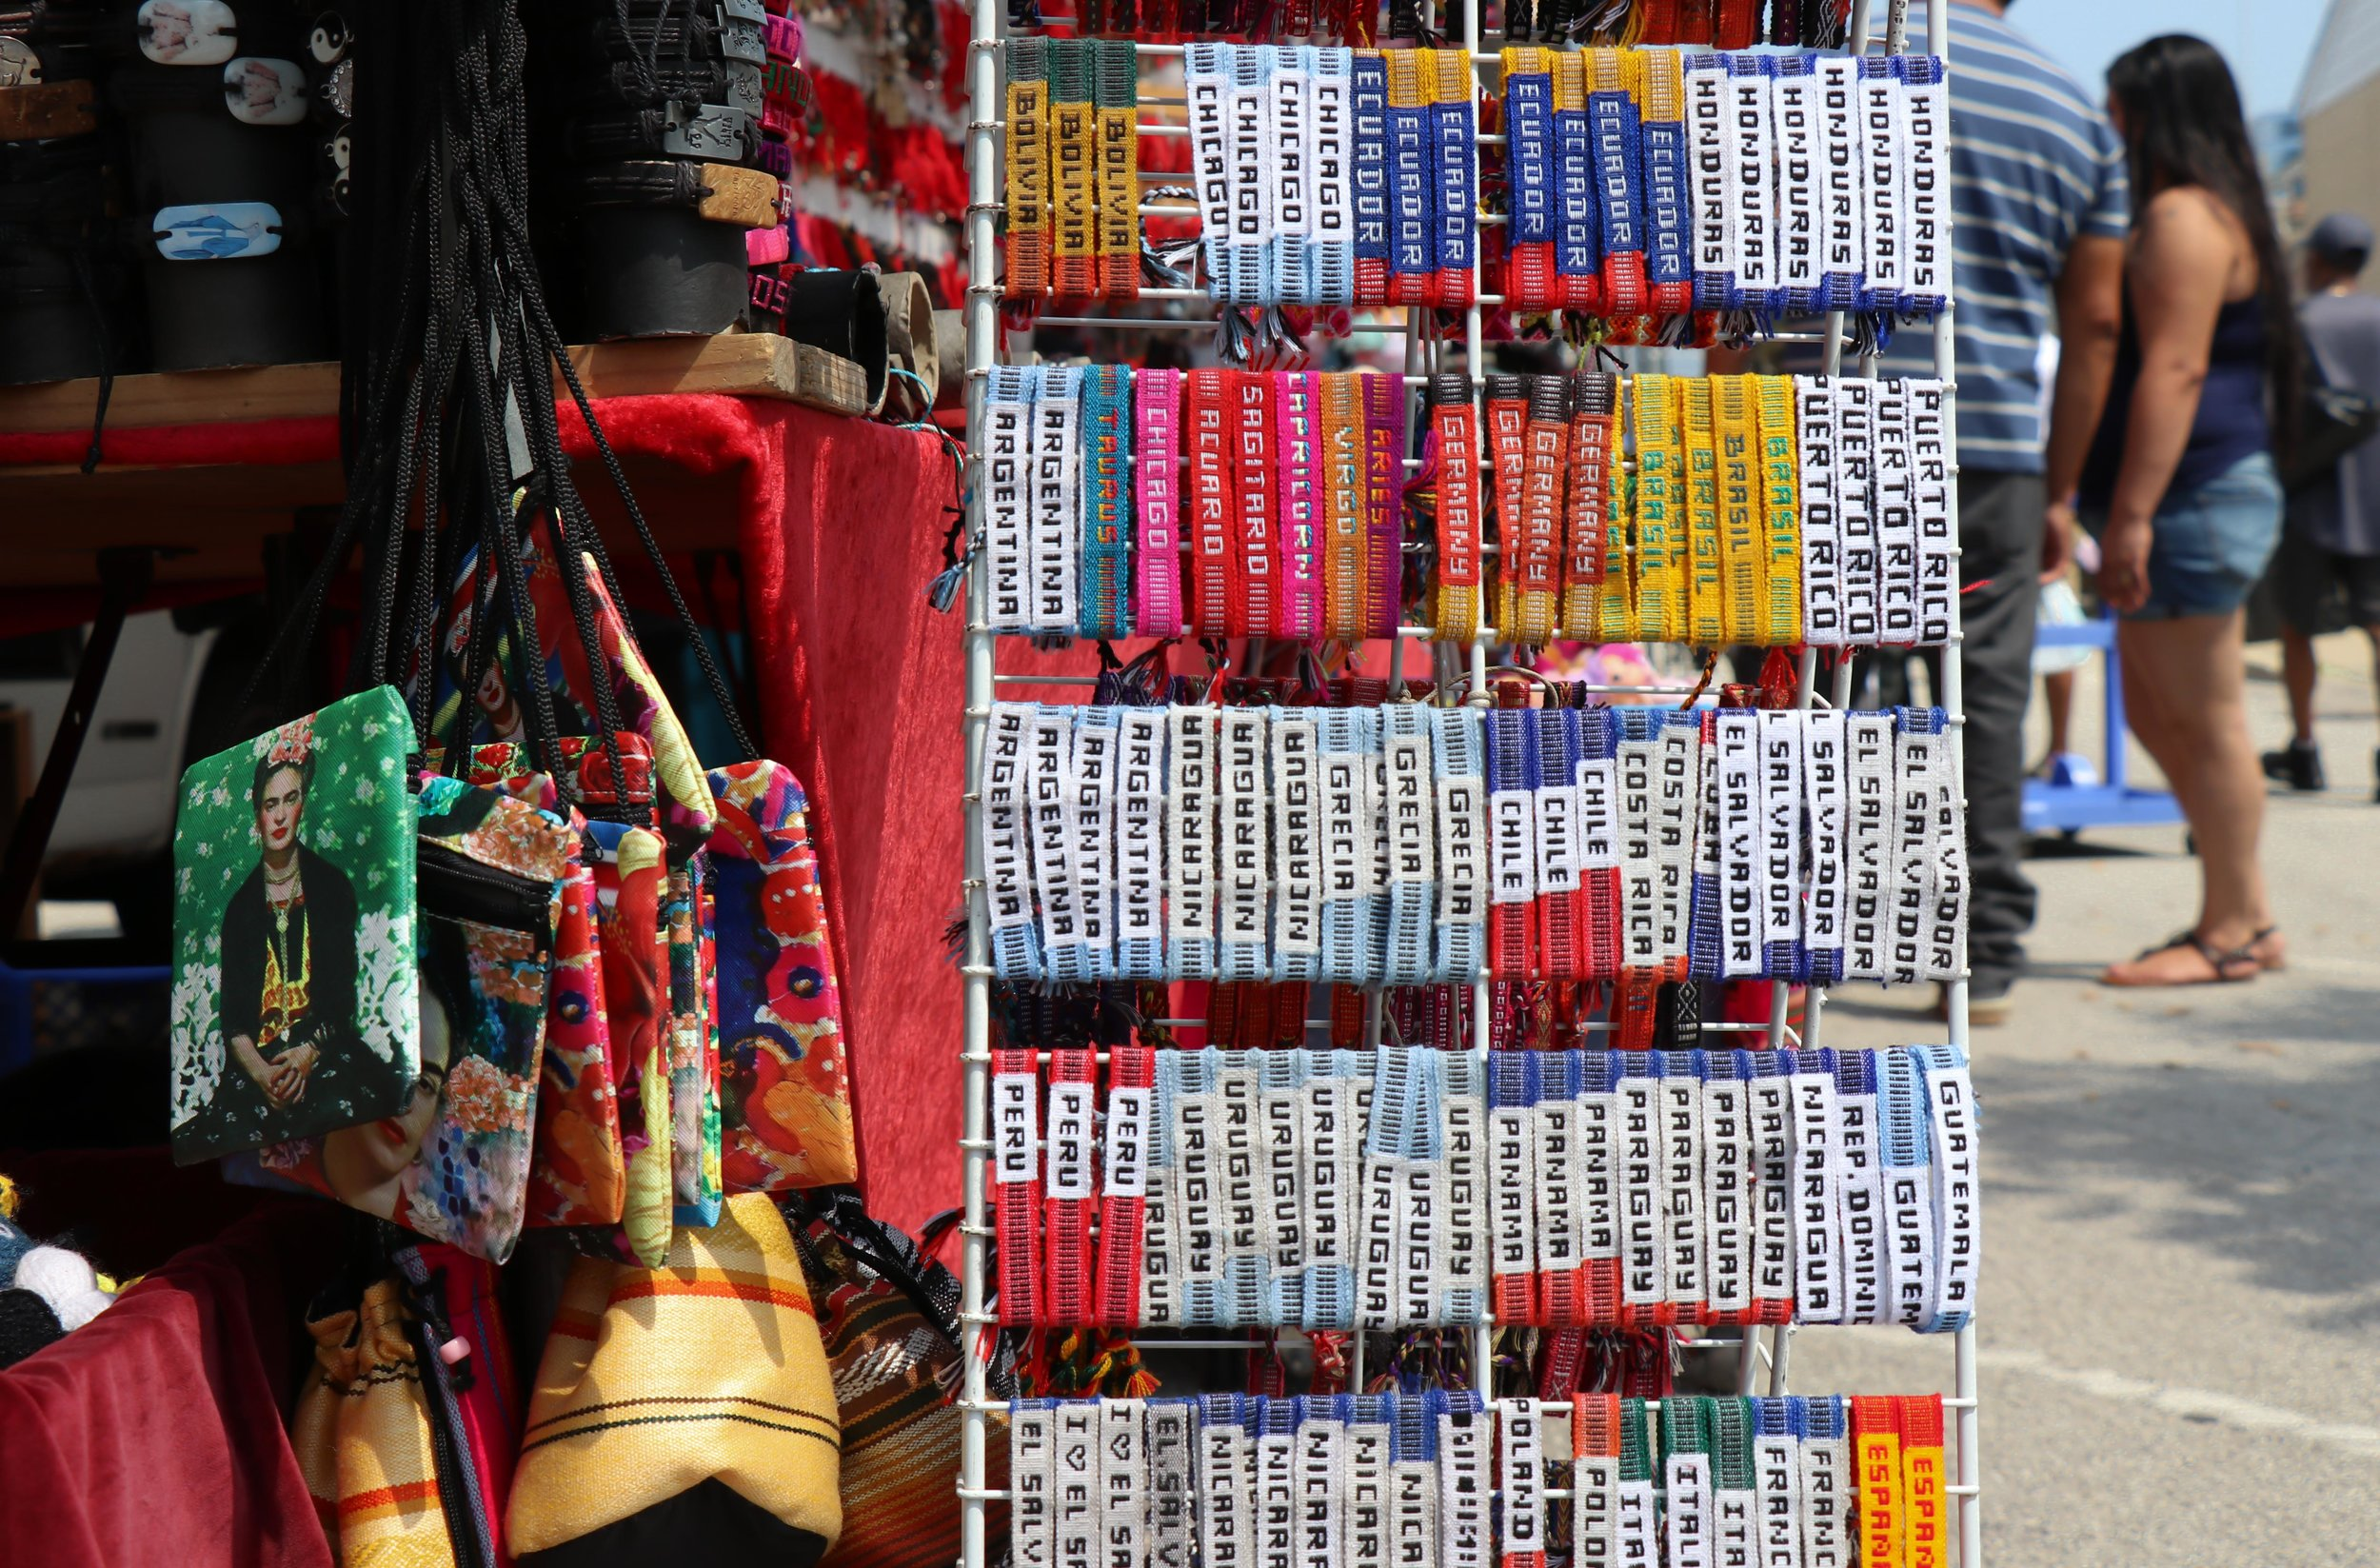 Handcrafted wristbands on sale, next to Frida-Kahlo-printed kitschy sling purses. Maxwell Street Market, South Desplaines Street. Chicago, 2018. (Vangmayi Parakala/MEDILL)